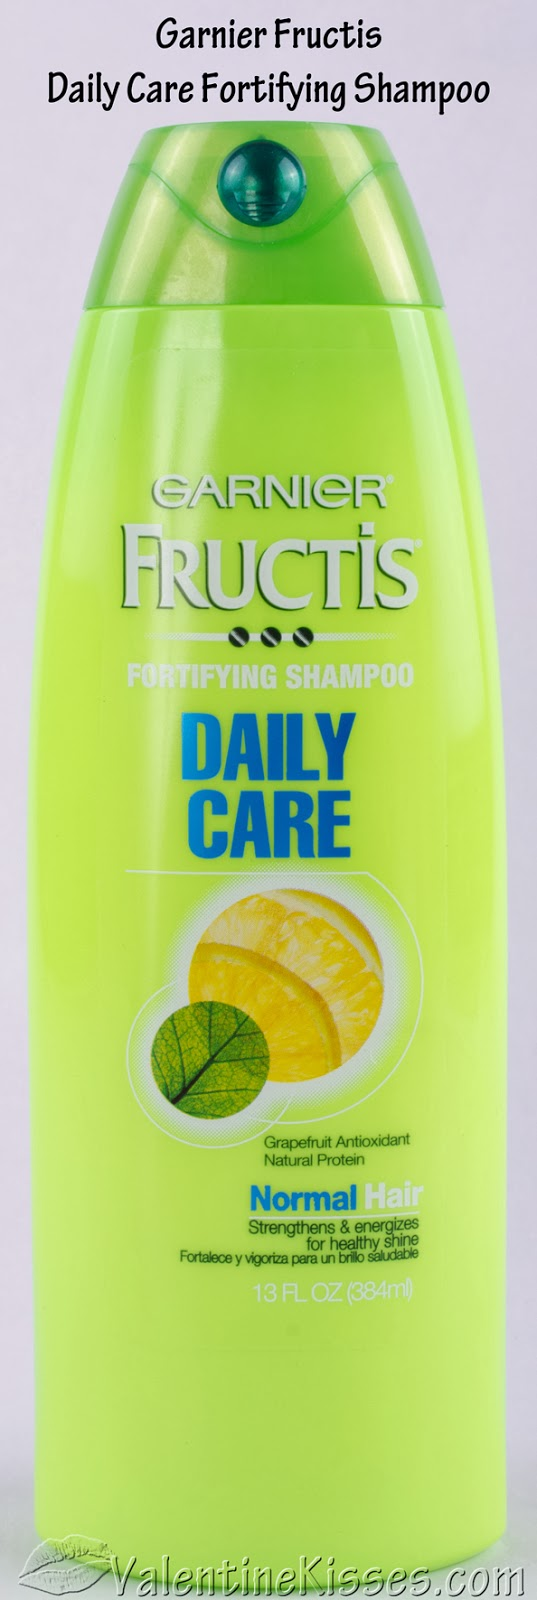 garnier fructis case study Get great deals on garnier fructis sleek & shine shampoo at cvs today browse real customer reviews and enjoy free 1 – 2 day shipping on most orders.